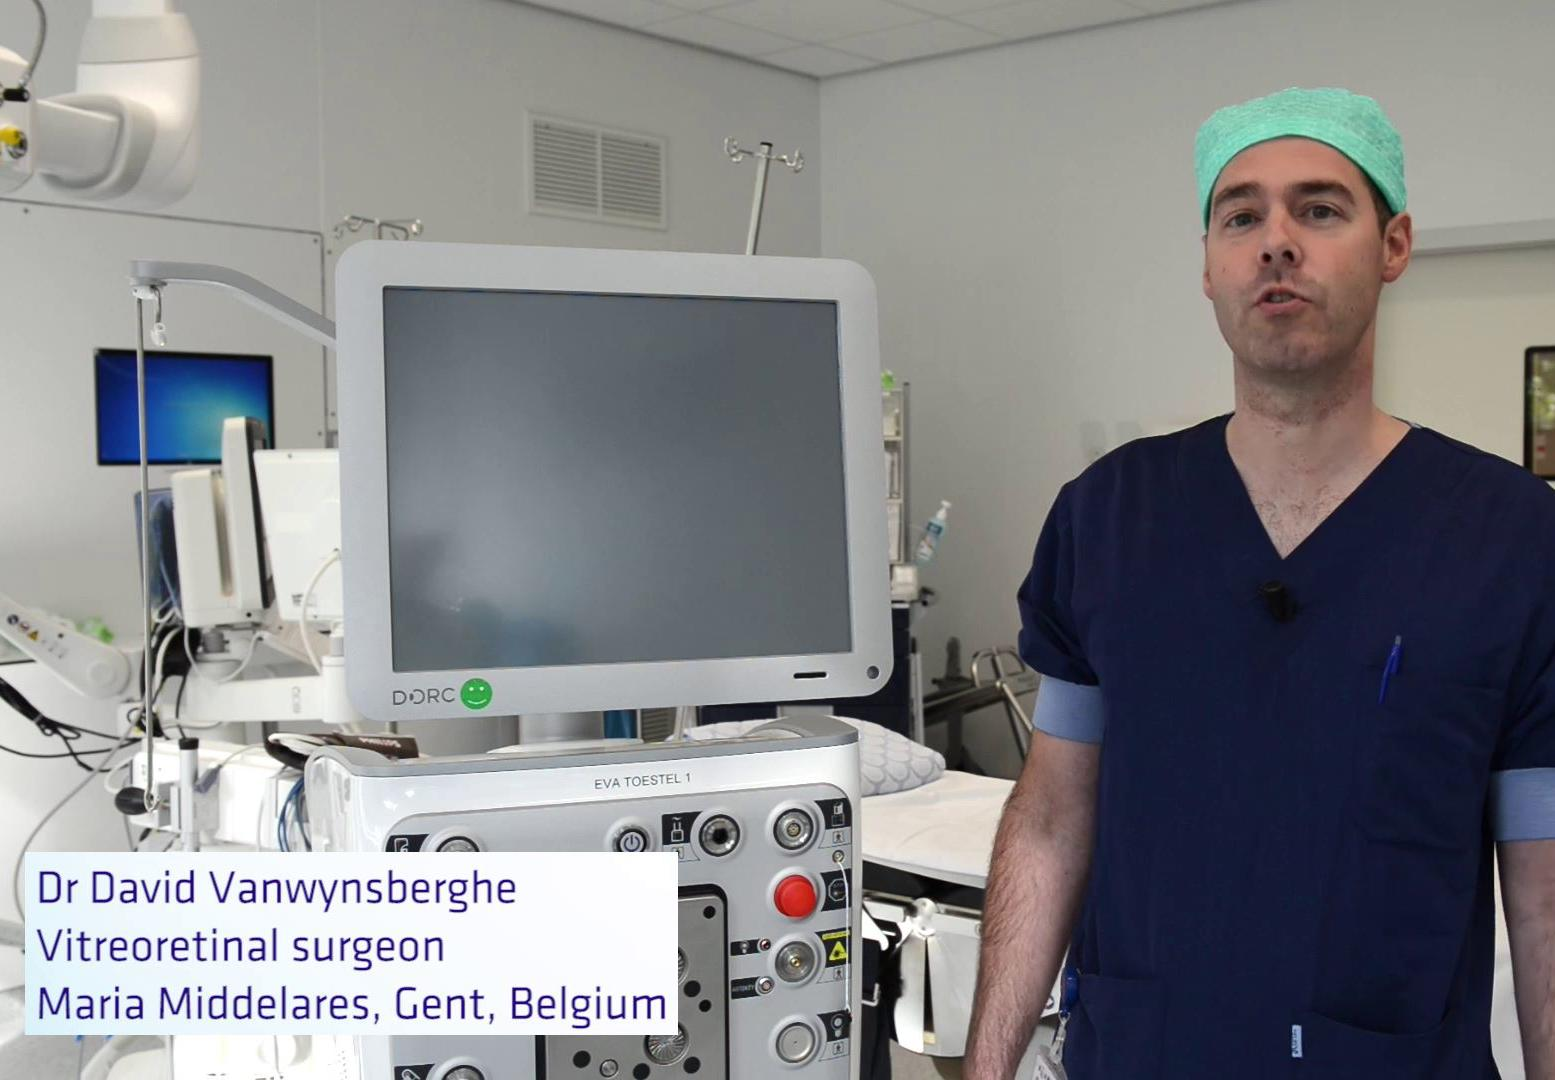 Dr Vanwynsberghe about EVA